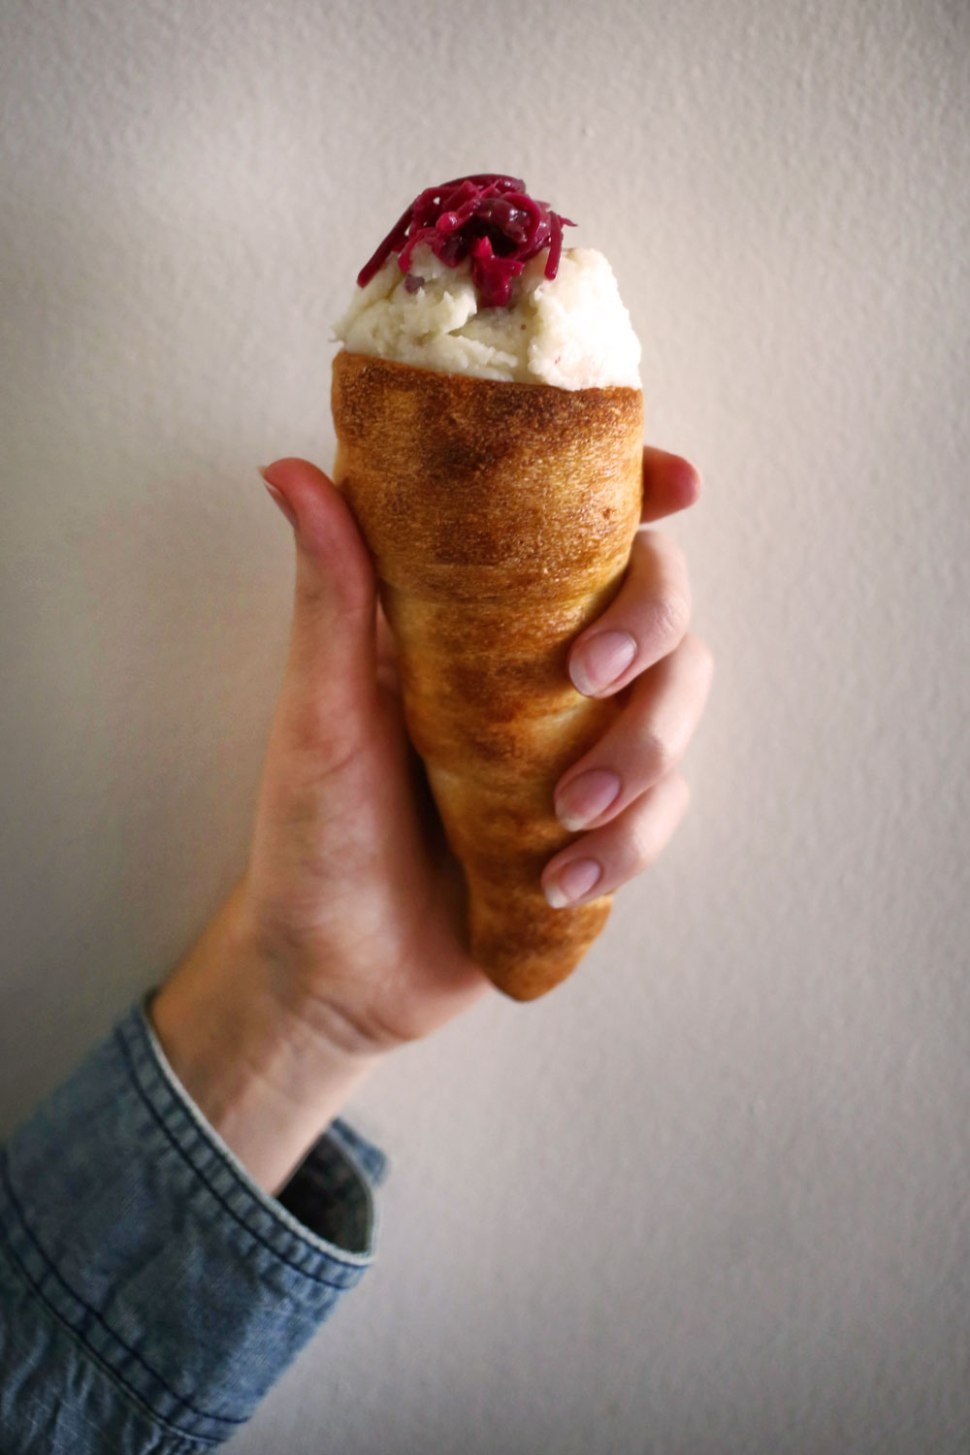 The Bread Cone DIY / Crafted in Carhartt